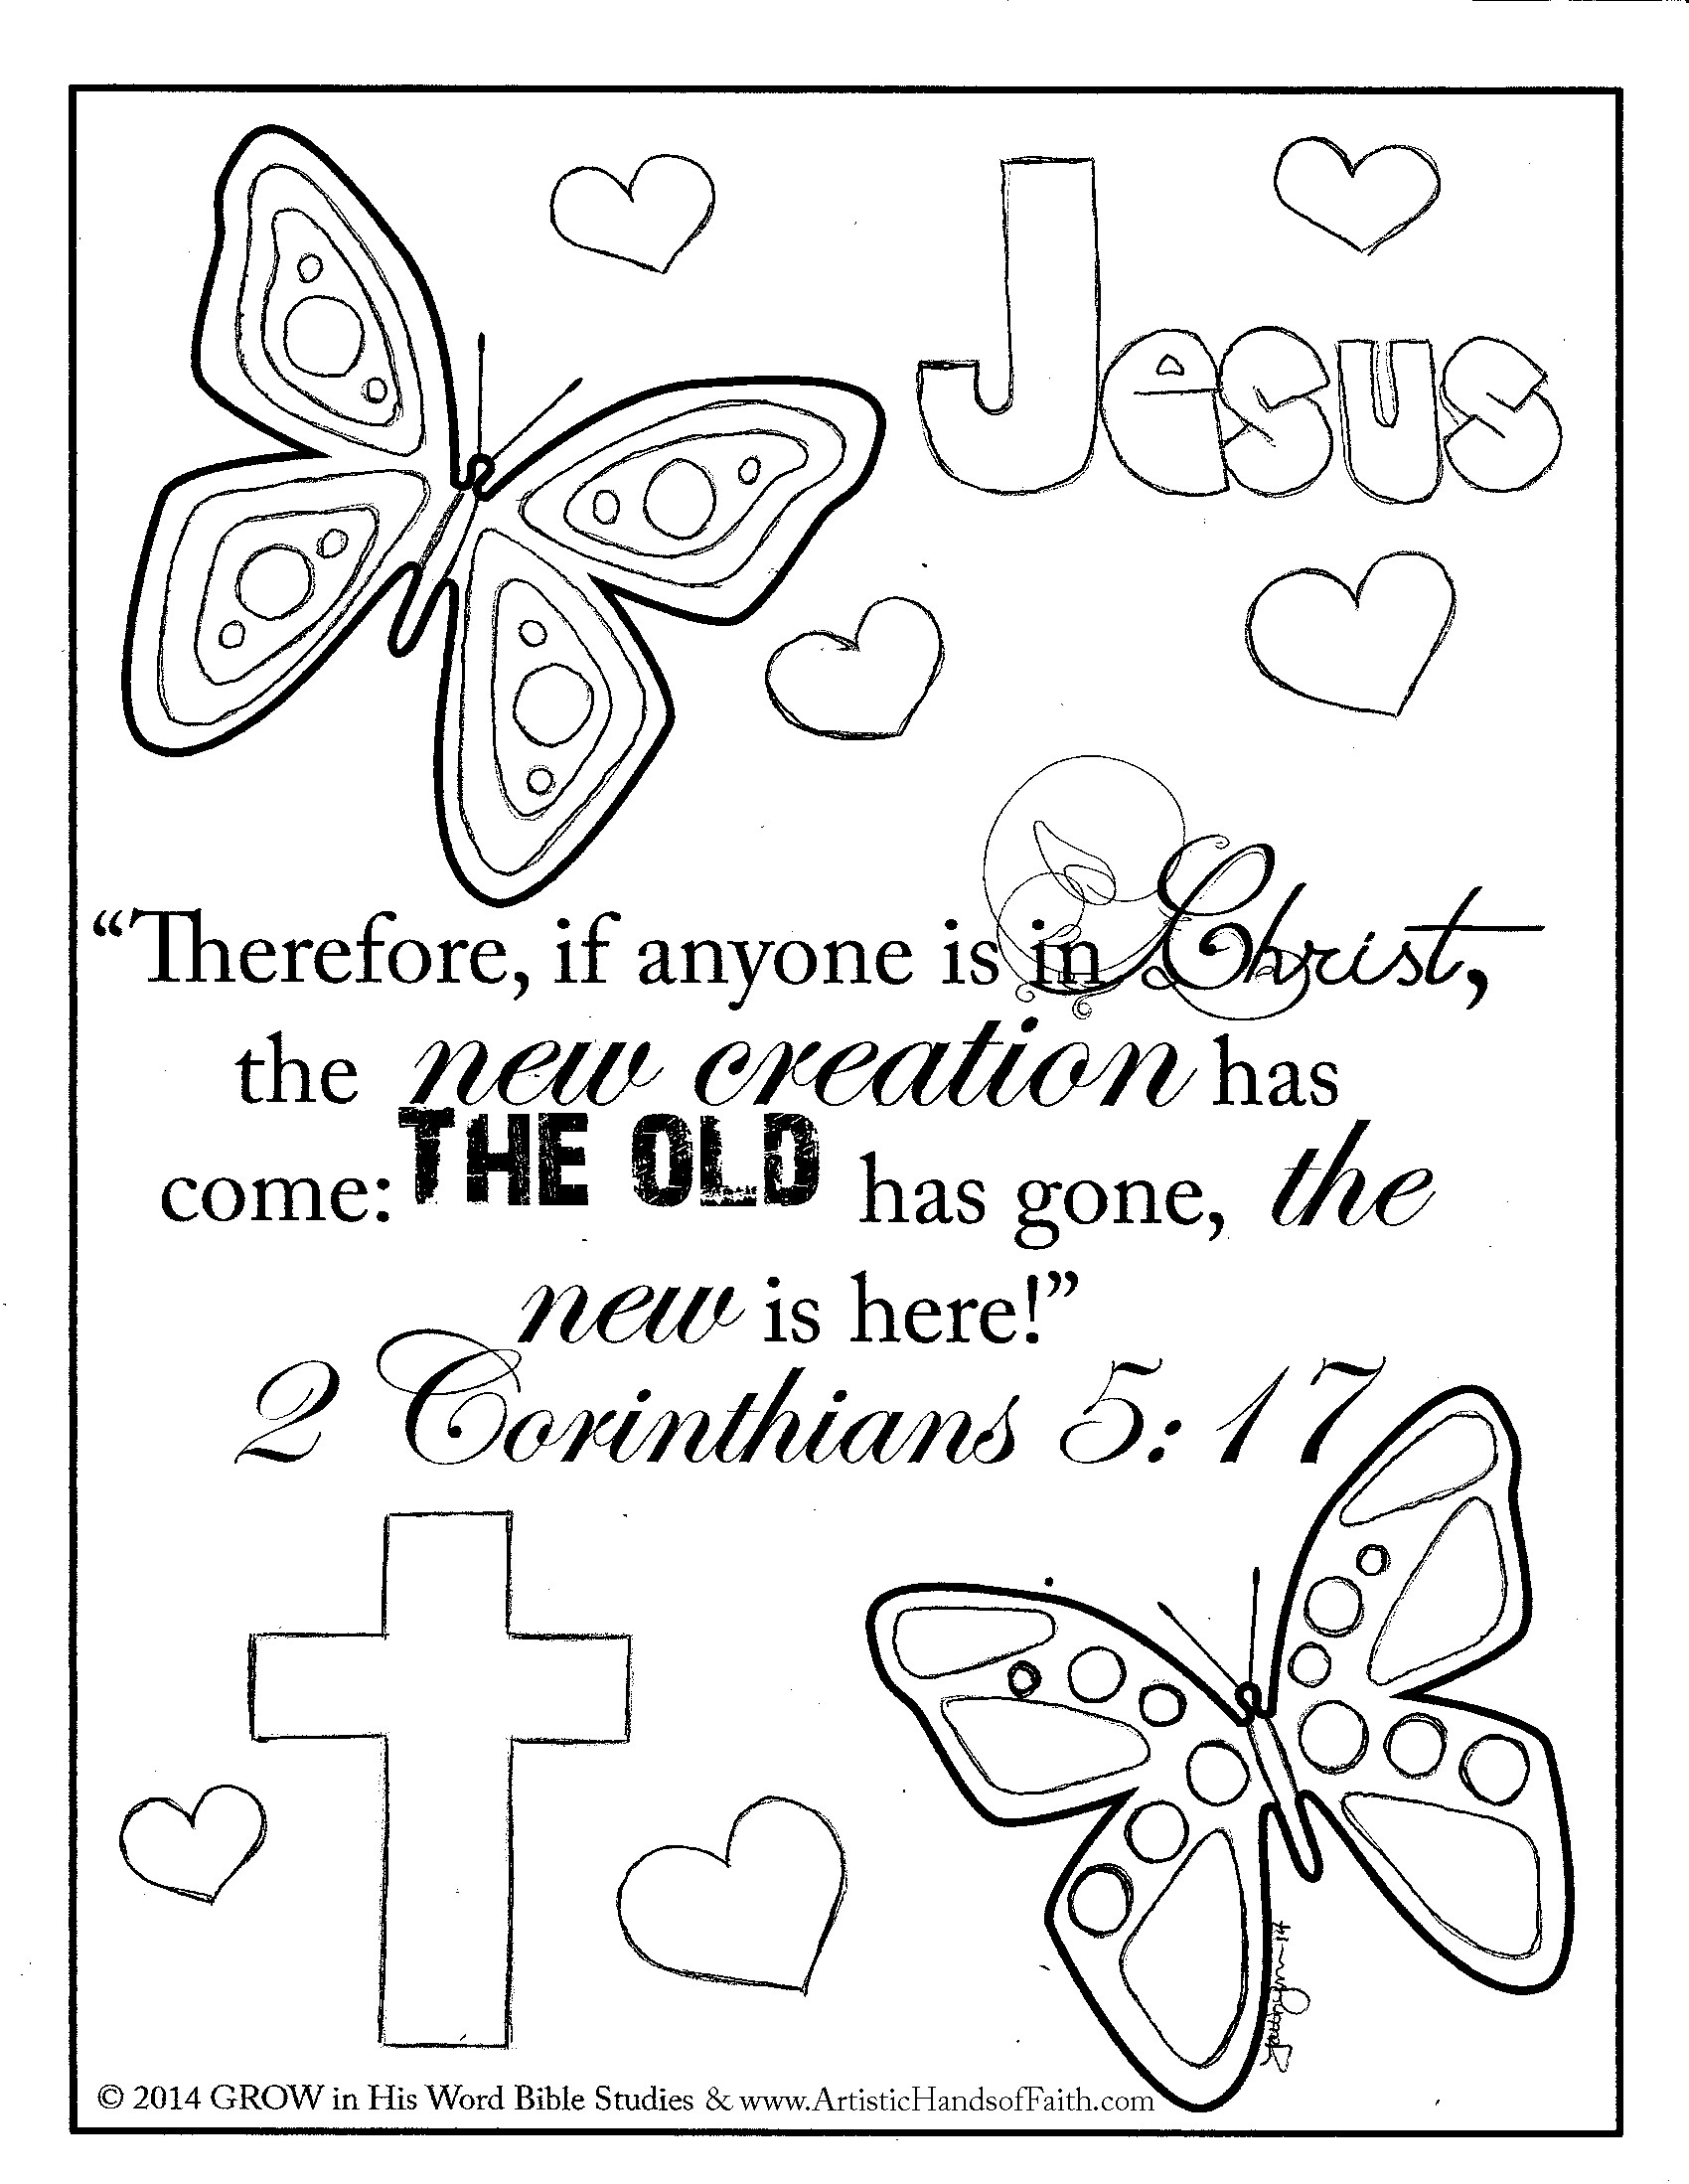 Bible Verse Coloring Sheets For Kids  Download Amazing Printable Bible Coloring Pages With